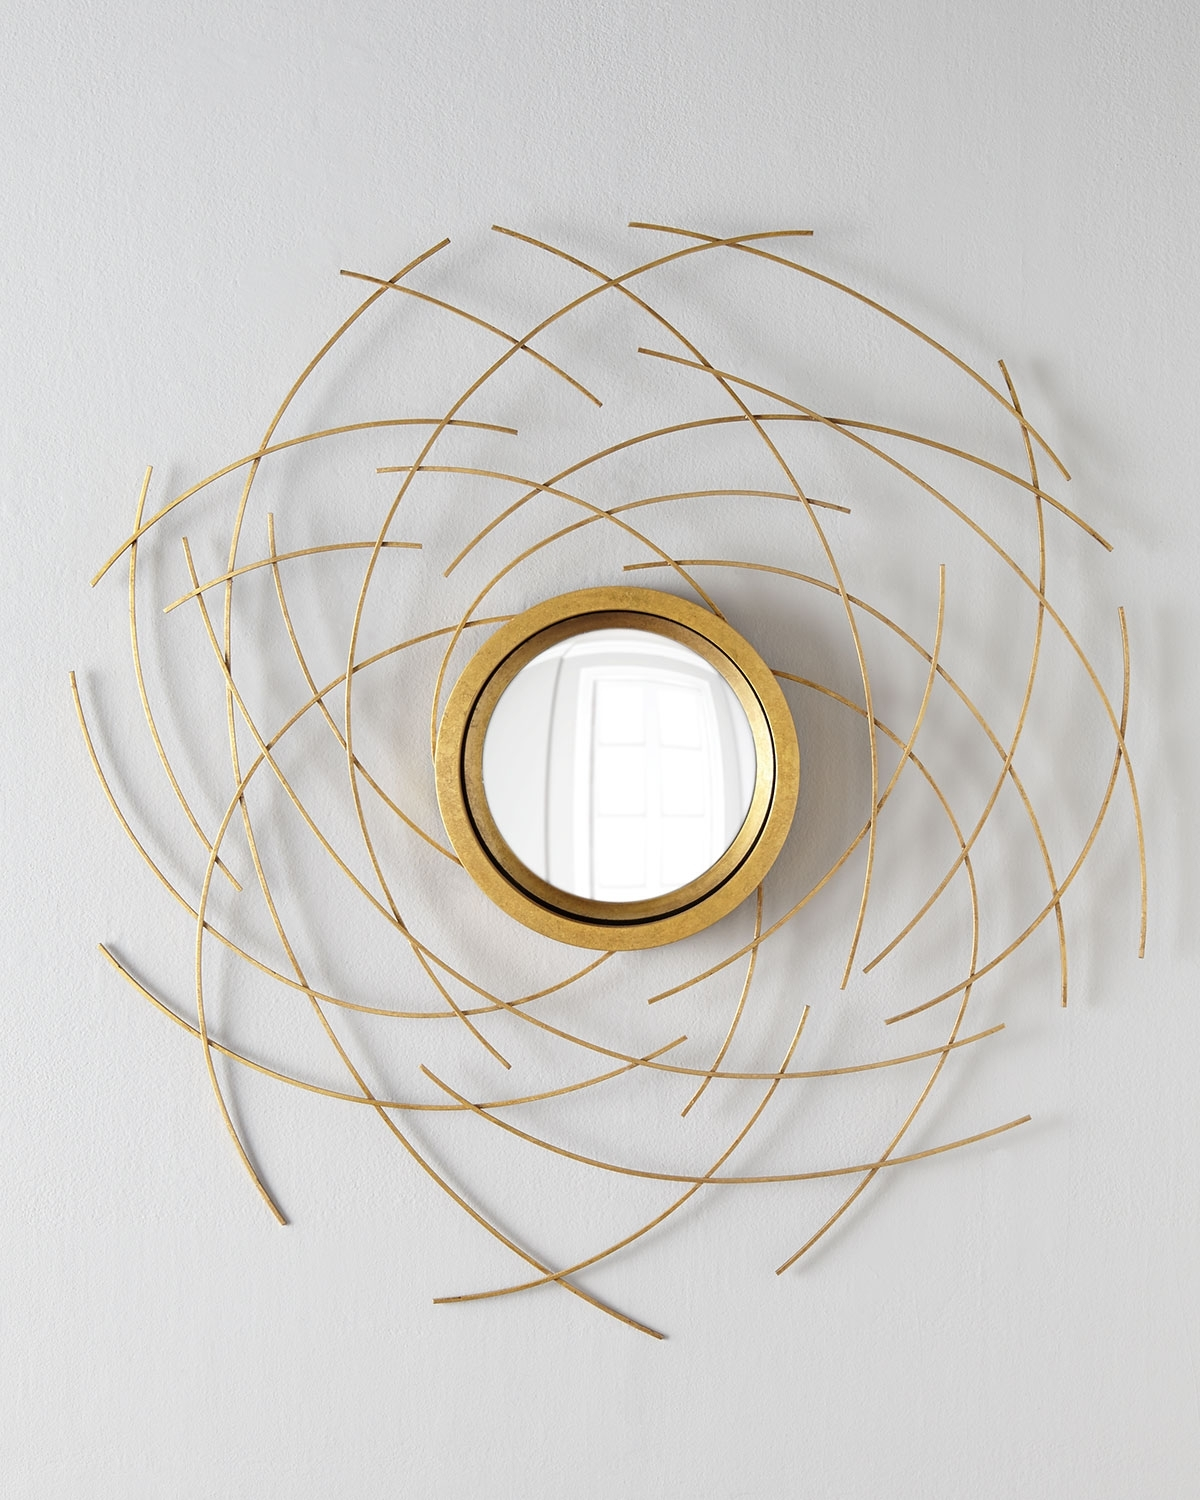 John Richard Wall Art Regarding Most Recently Released Abstract Mirror Wall Decor, Gold – John Richard Collection (View 11 of 15)